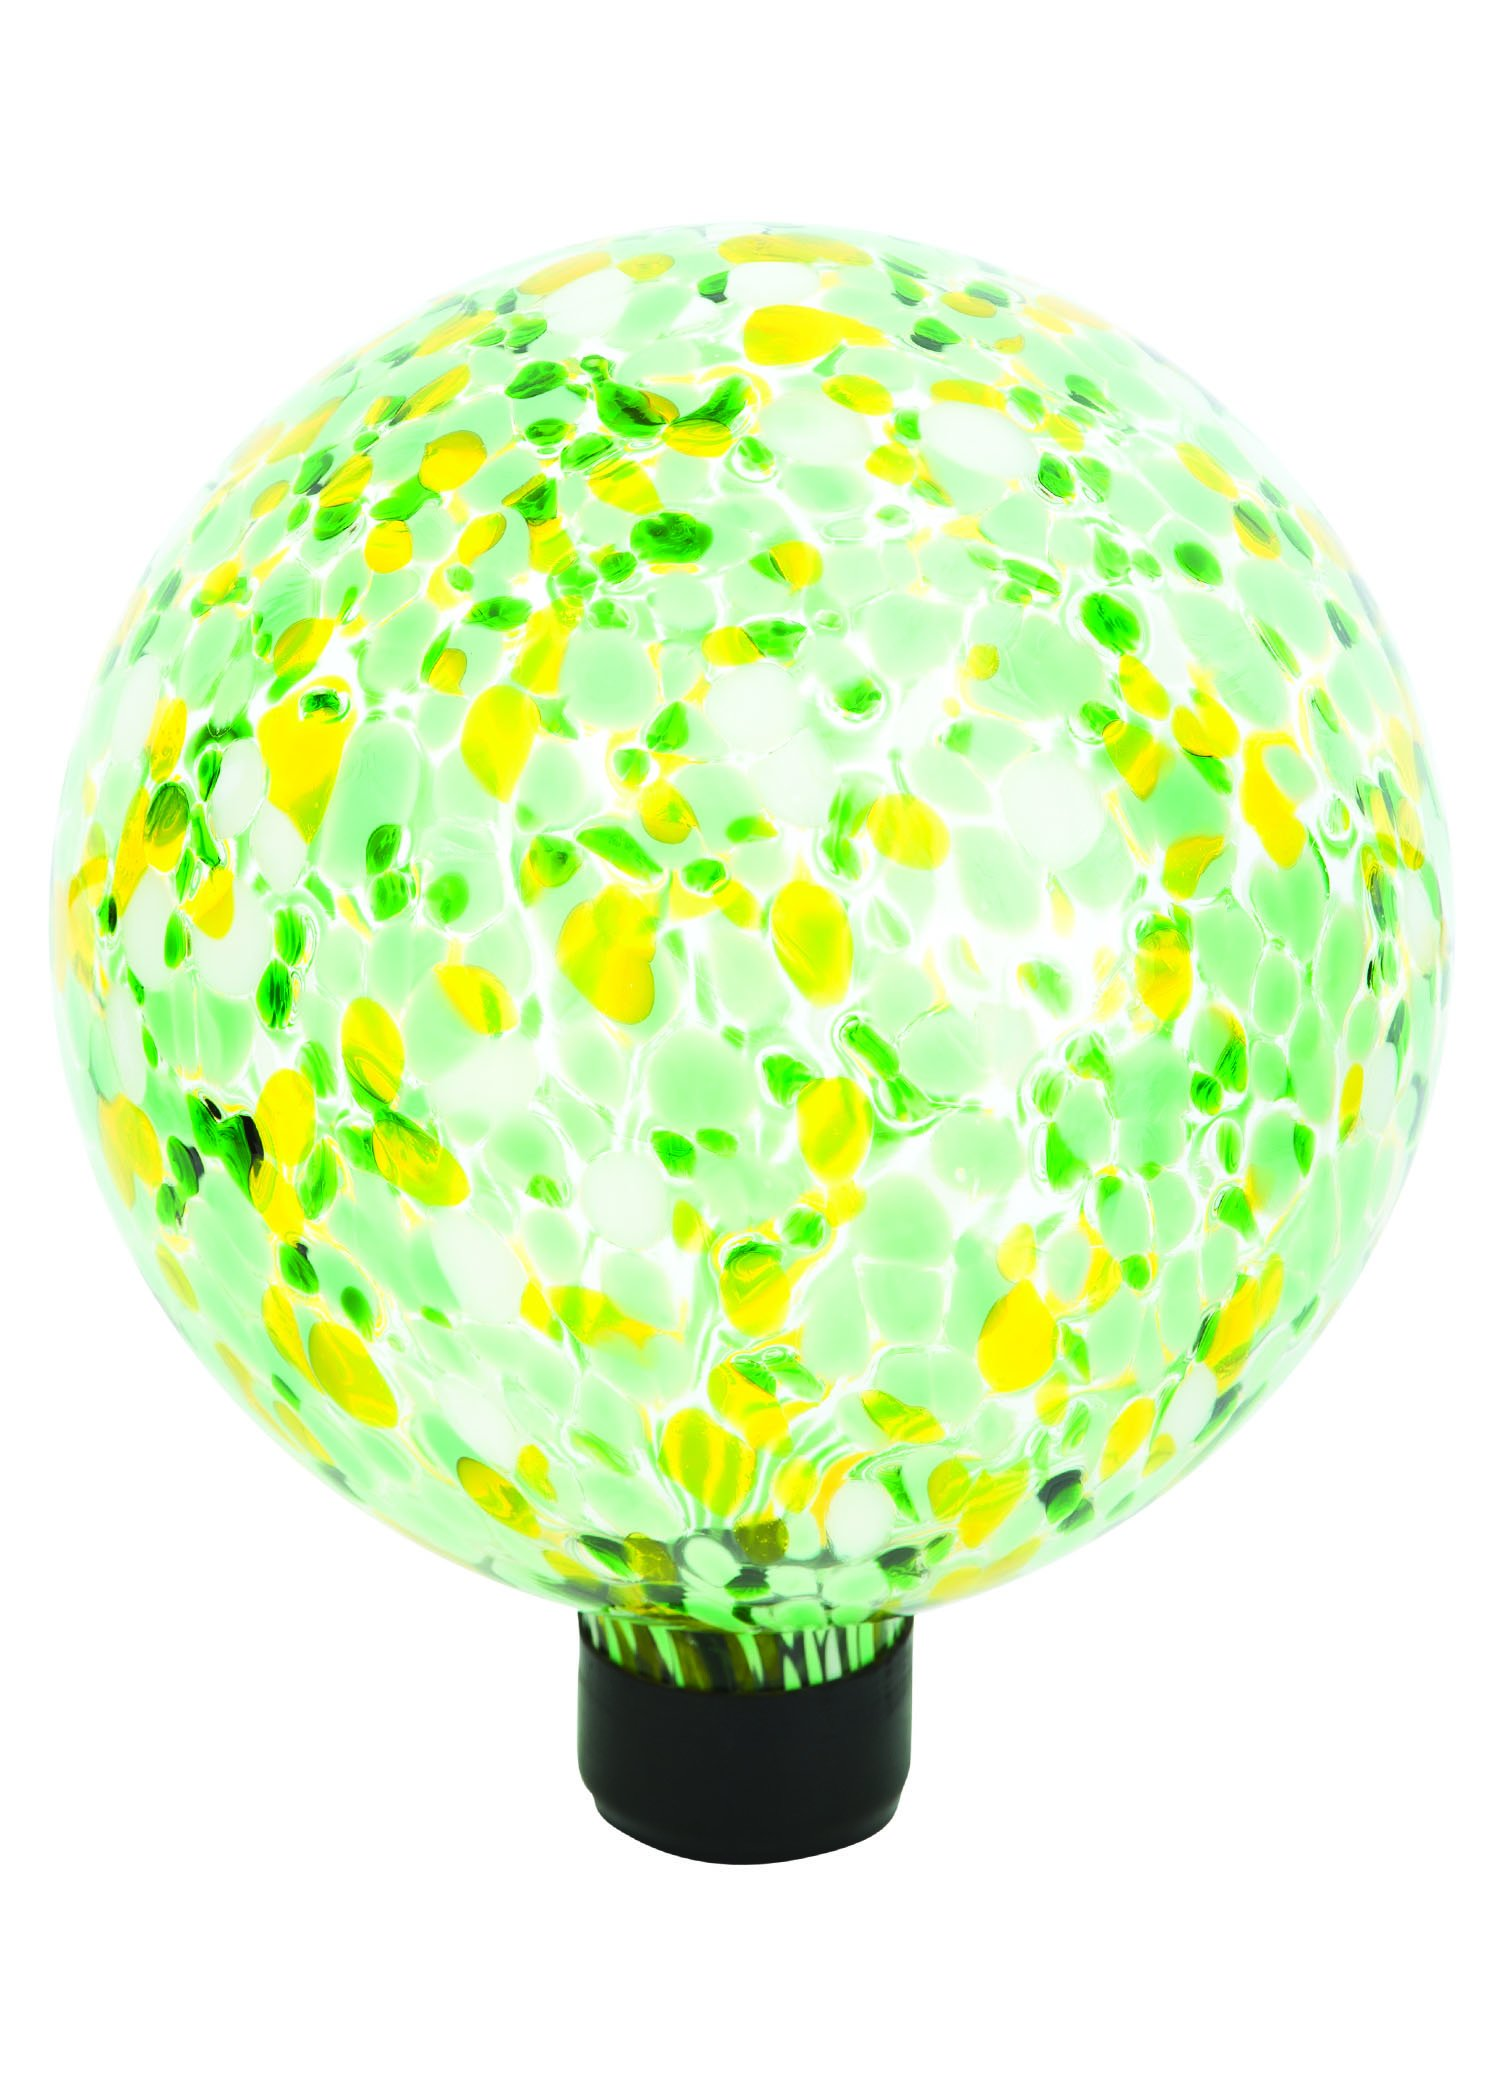 Russco III GD137128 Glass Gazing Ball, 10'', Green Spots by Russco III